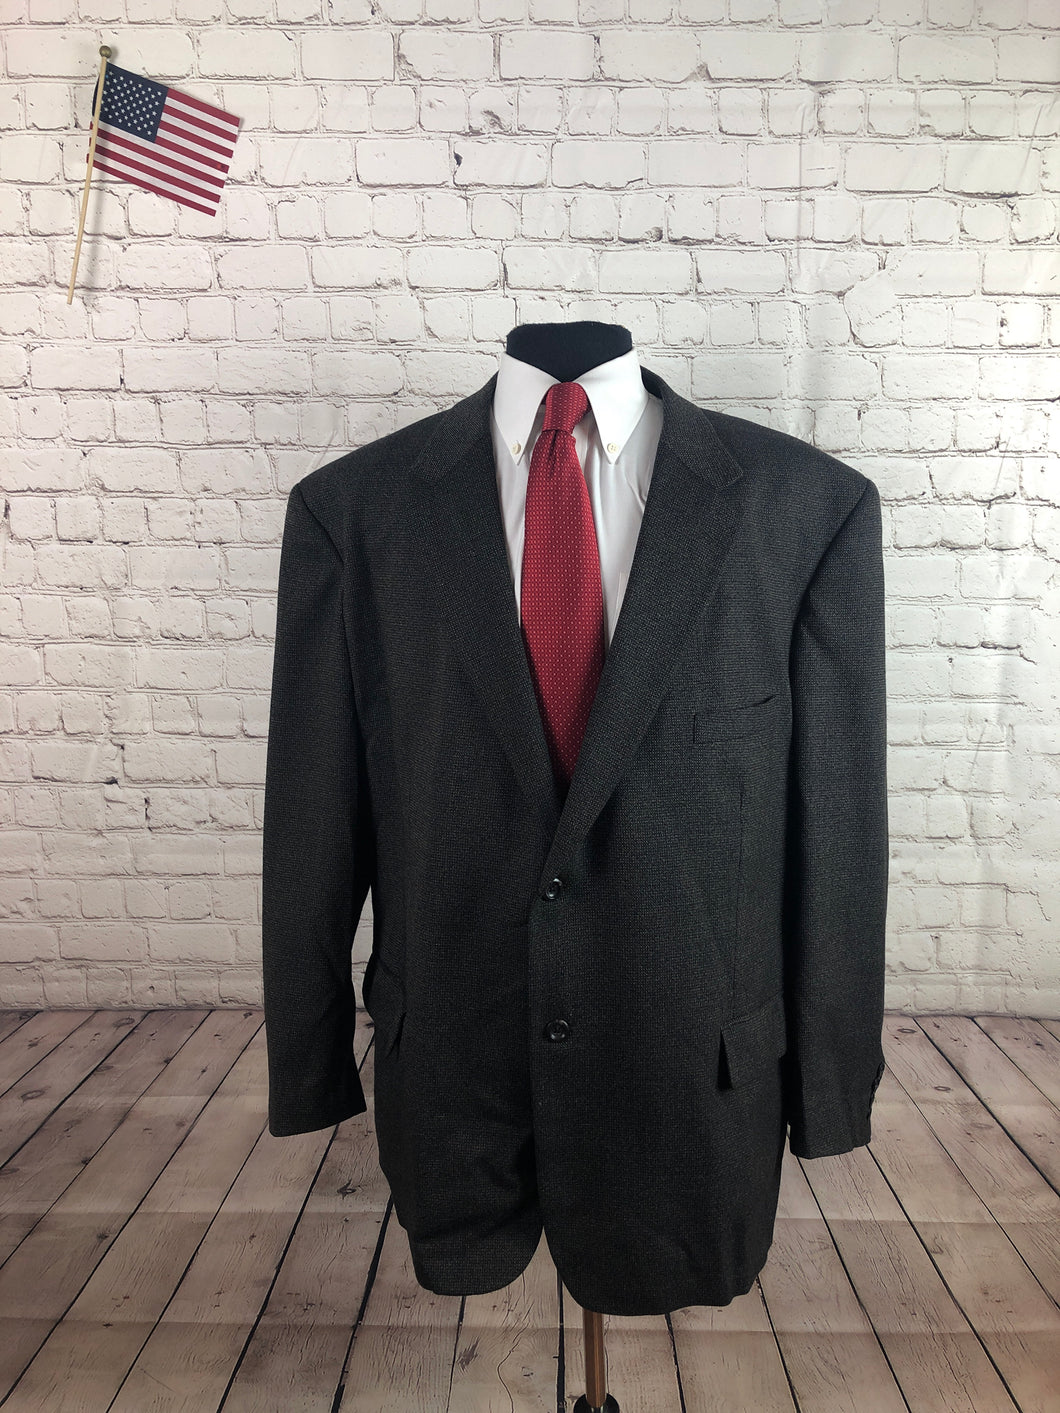 Pronto Uomo Men's Brown Wool Blend 2 Button Big & Tall Blazer Sport Coat Suit Jacket Size 52R $298 - SUIT CHARITY OUTLET